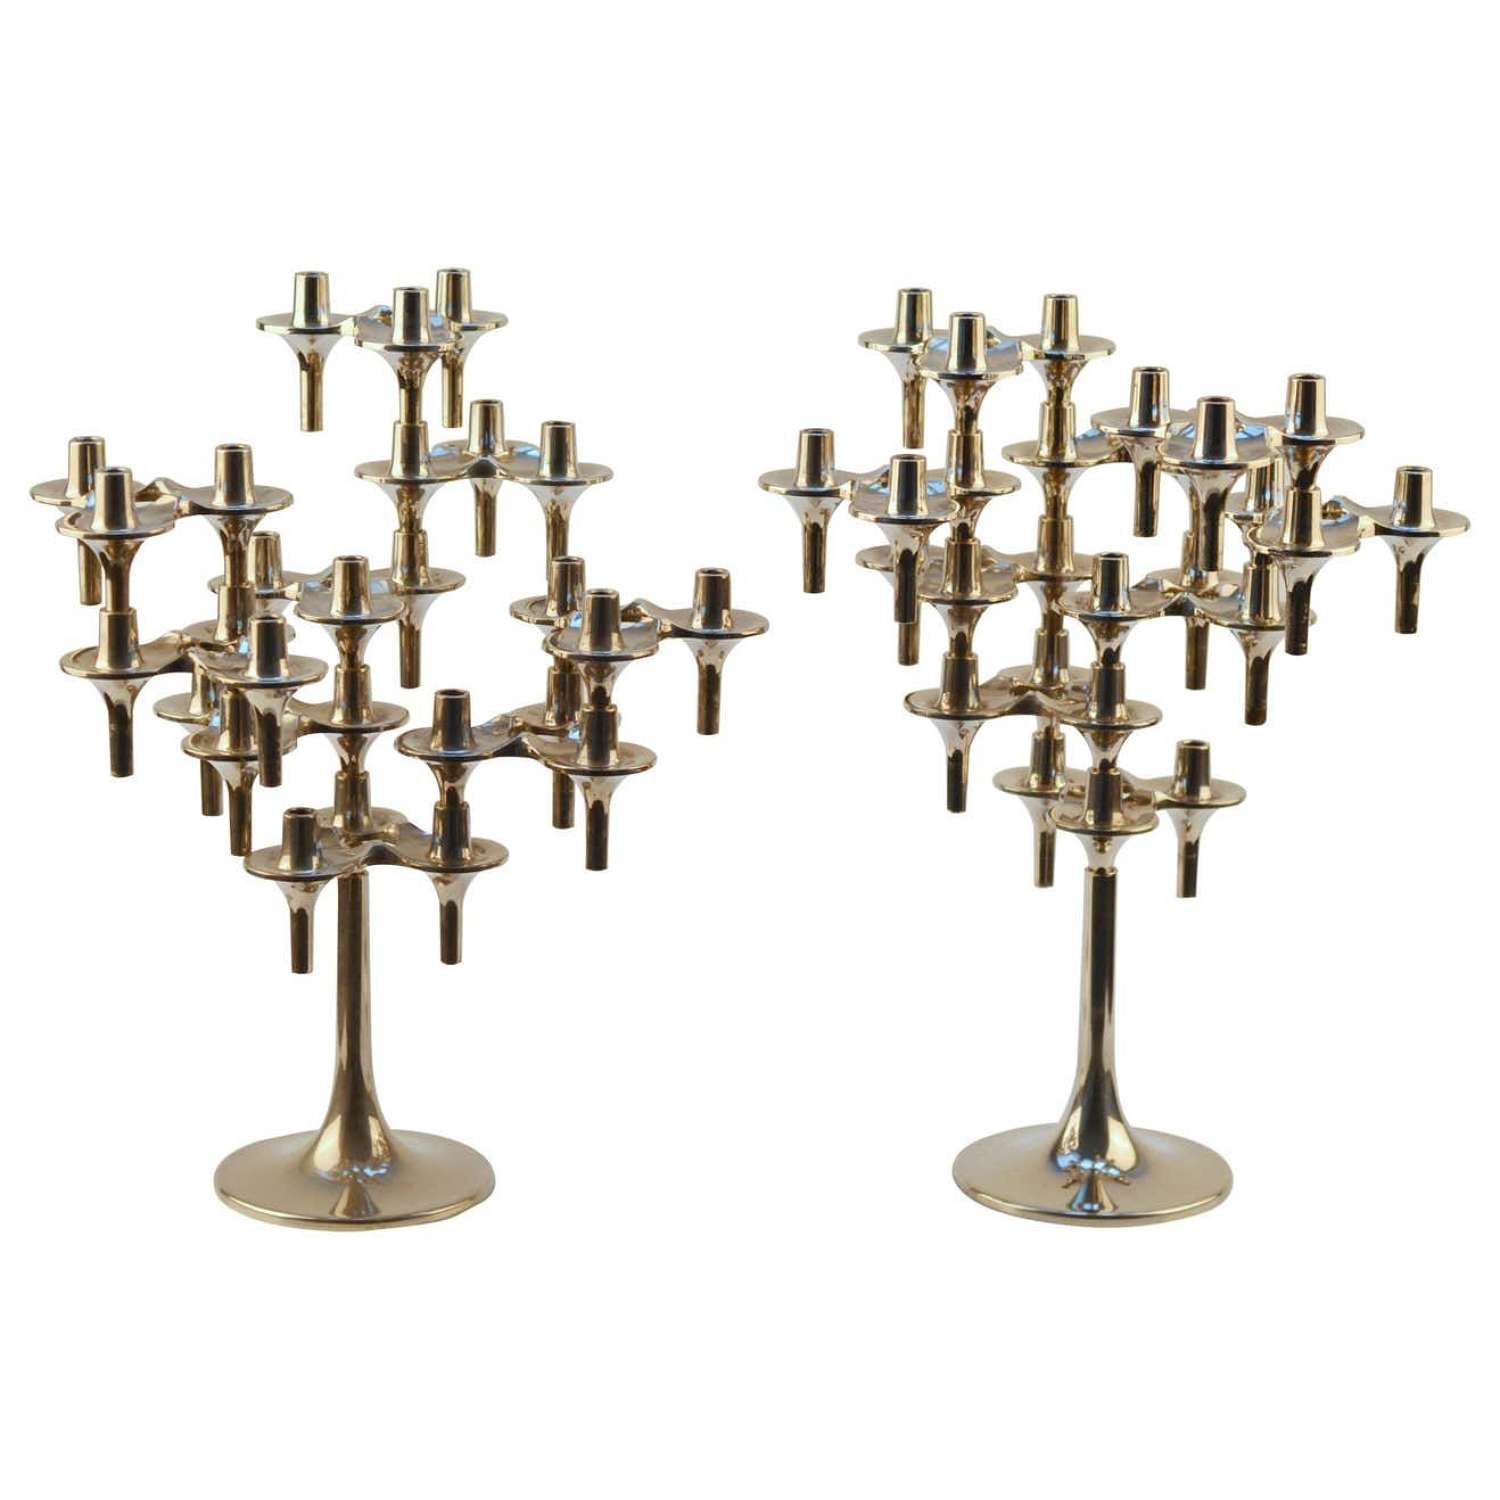 Pair of Modular Orion Candelabras by Nagel, 1960's